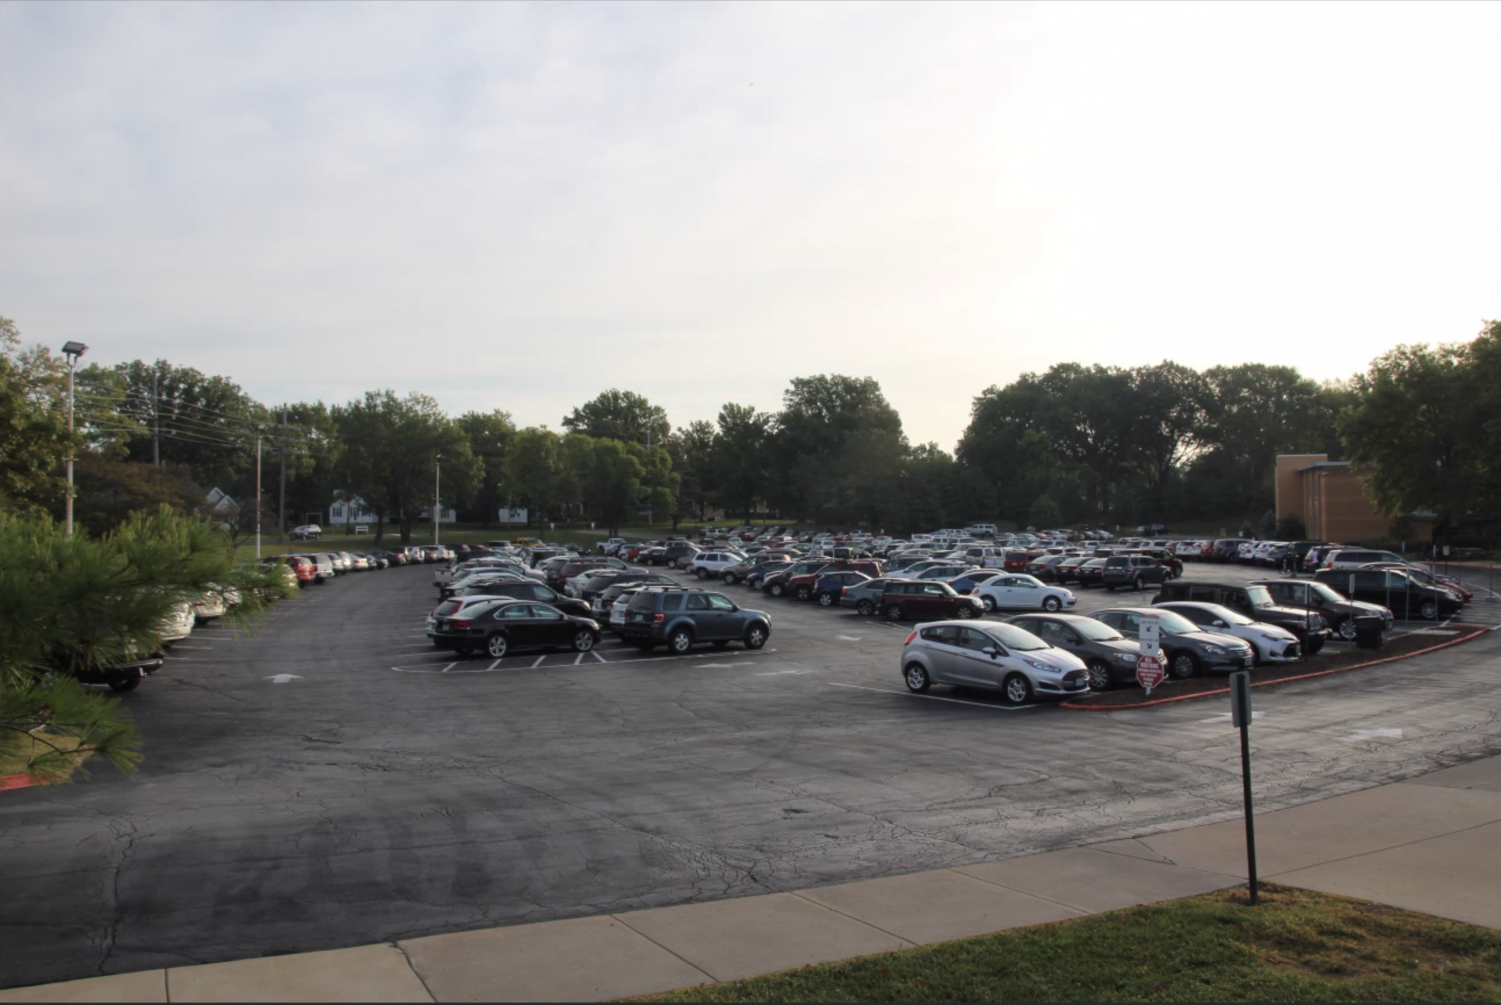 Issues: The problems with parking lots